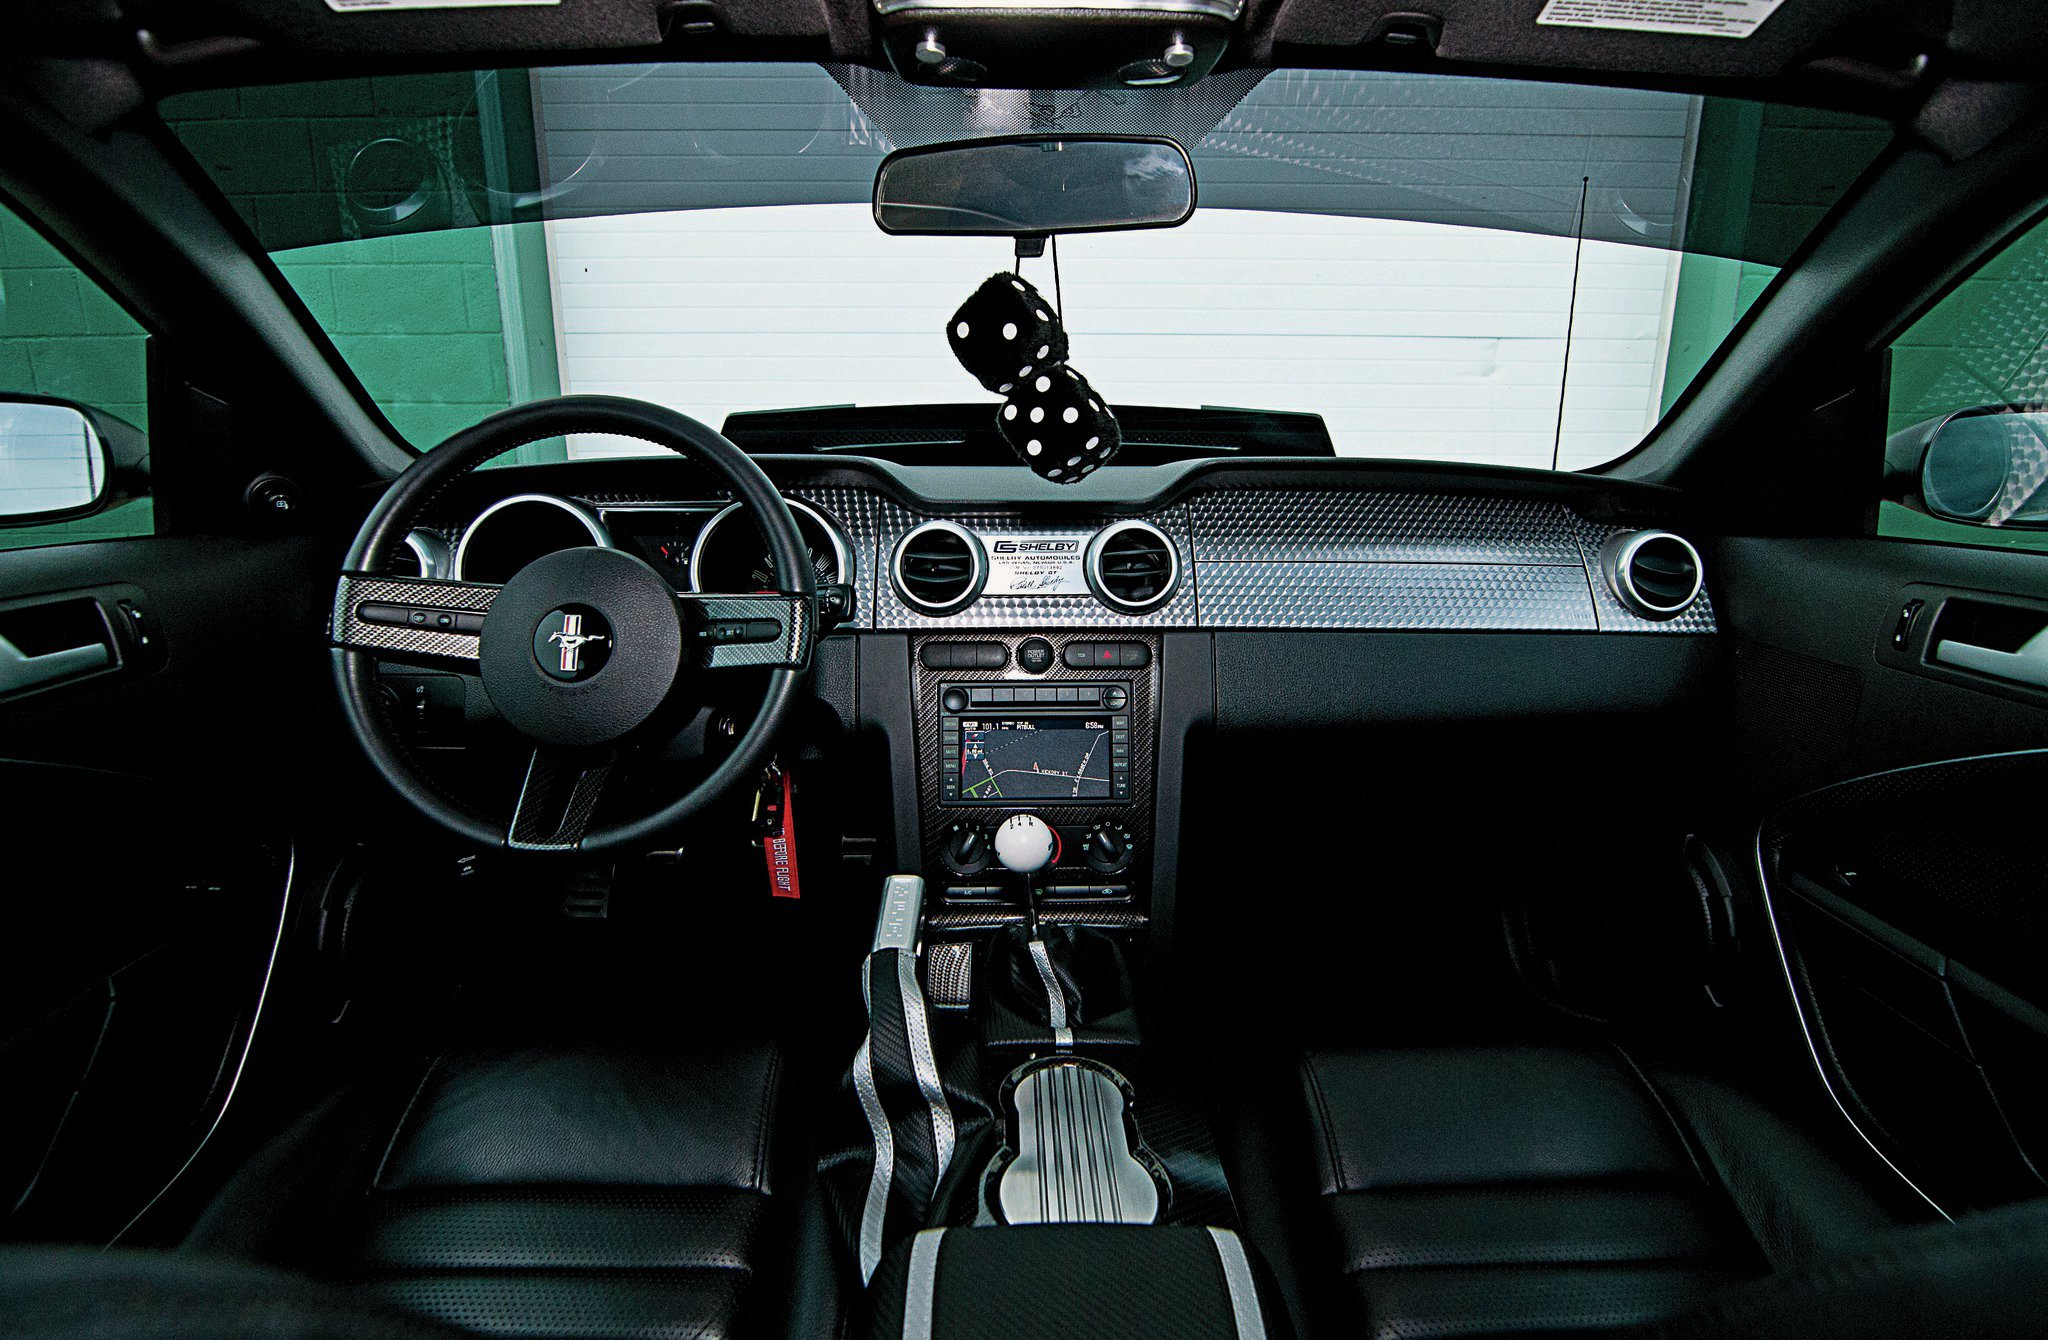 2007 ford mustang shelby gt interior dash [ 2048 x 1340 Pixel ]